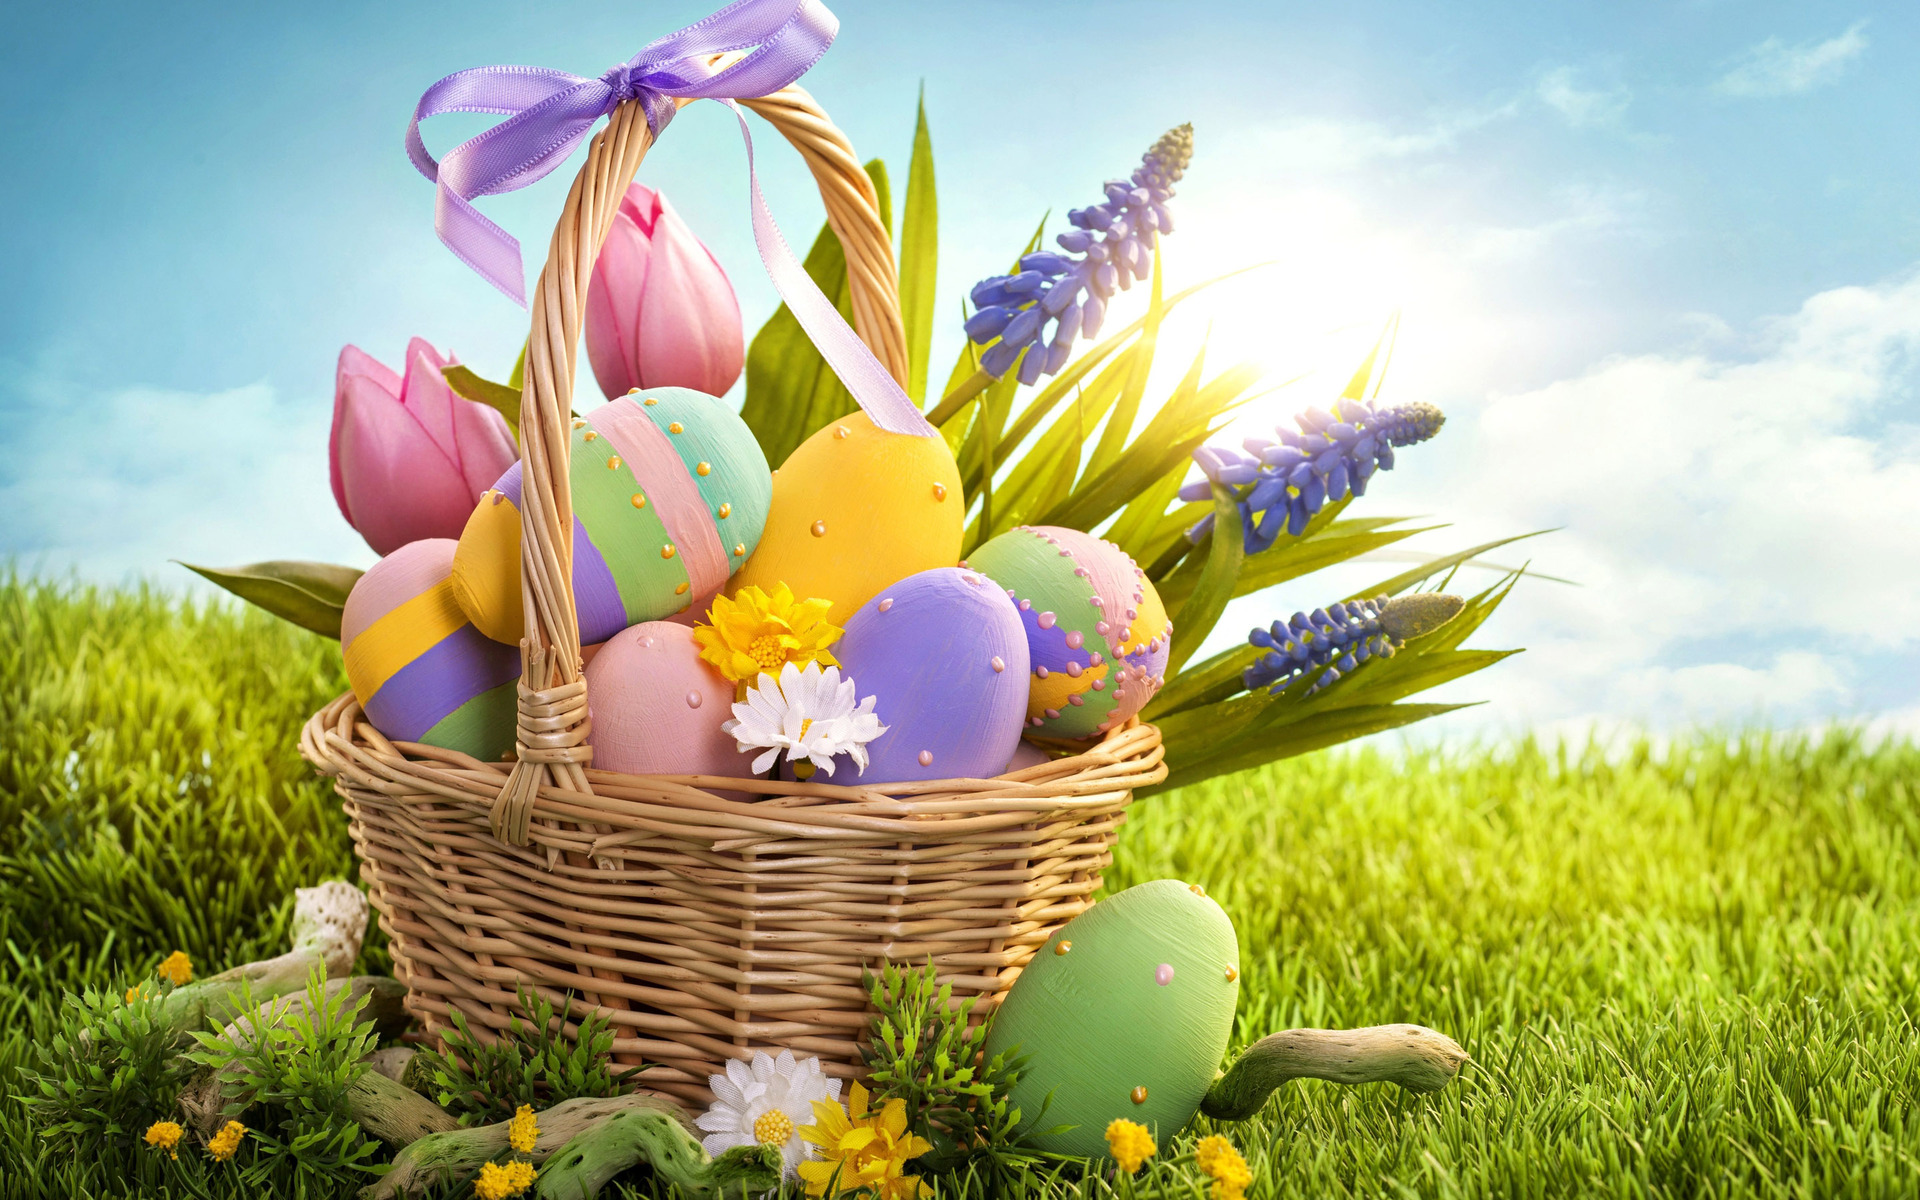 Easter Wallpapers Easter Backgrounds Full HD wallpapers 1920x1200